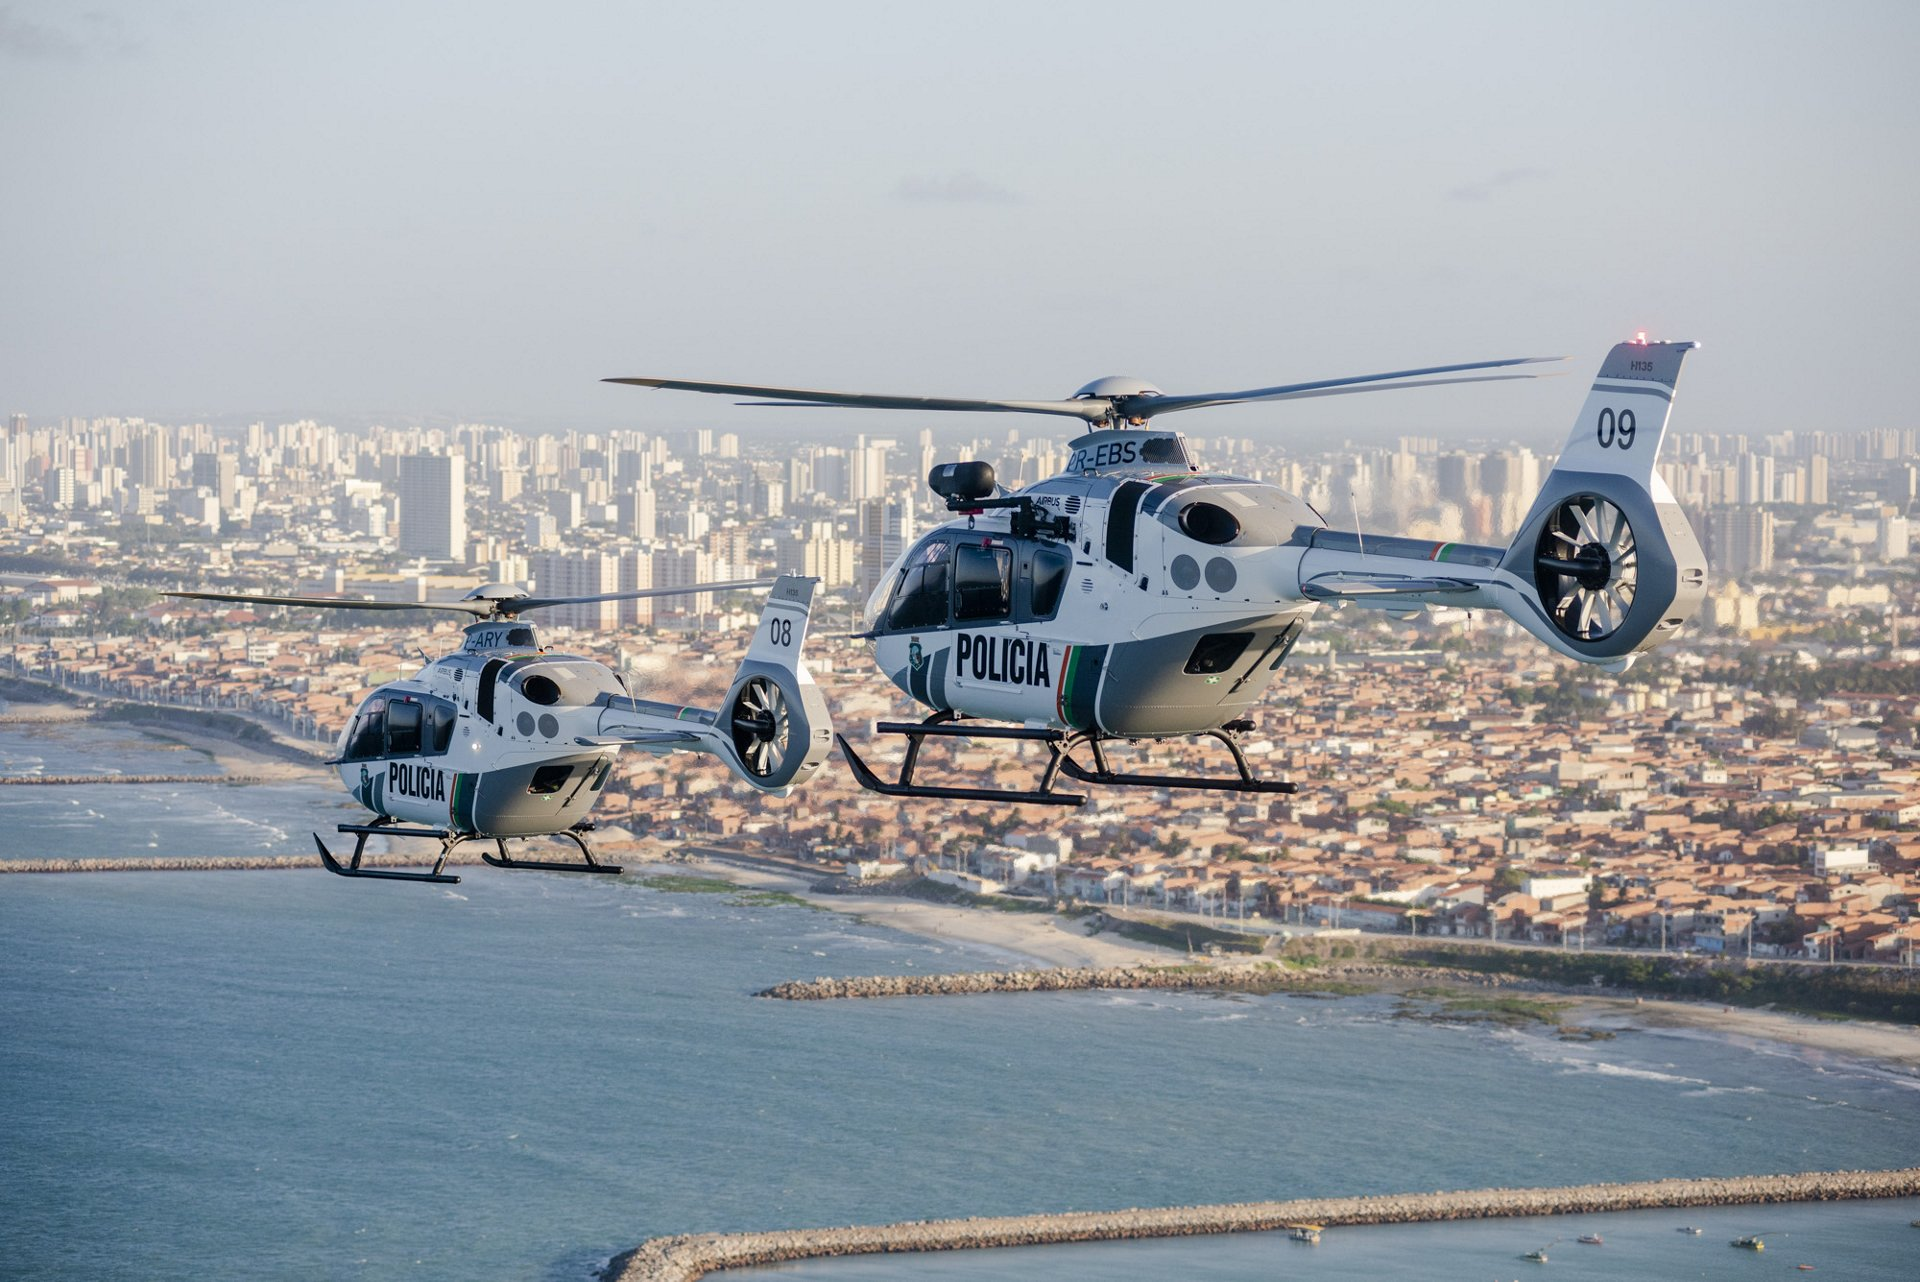 The two delivered helicopters will be used to reinforce public security in Ceará State, as well as providing support for aeromedical operations in other regions of the state.